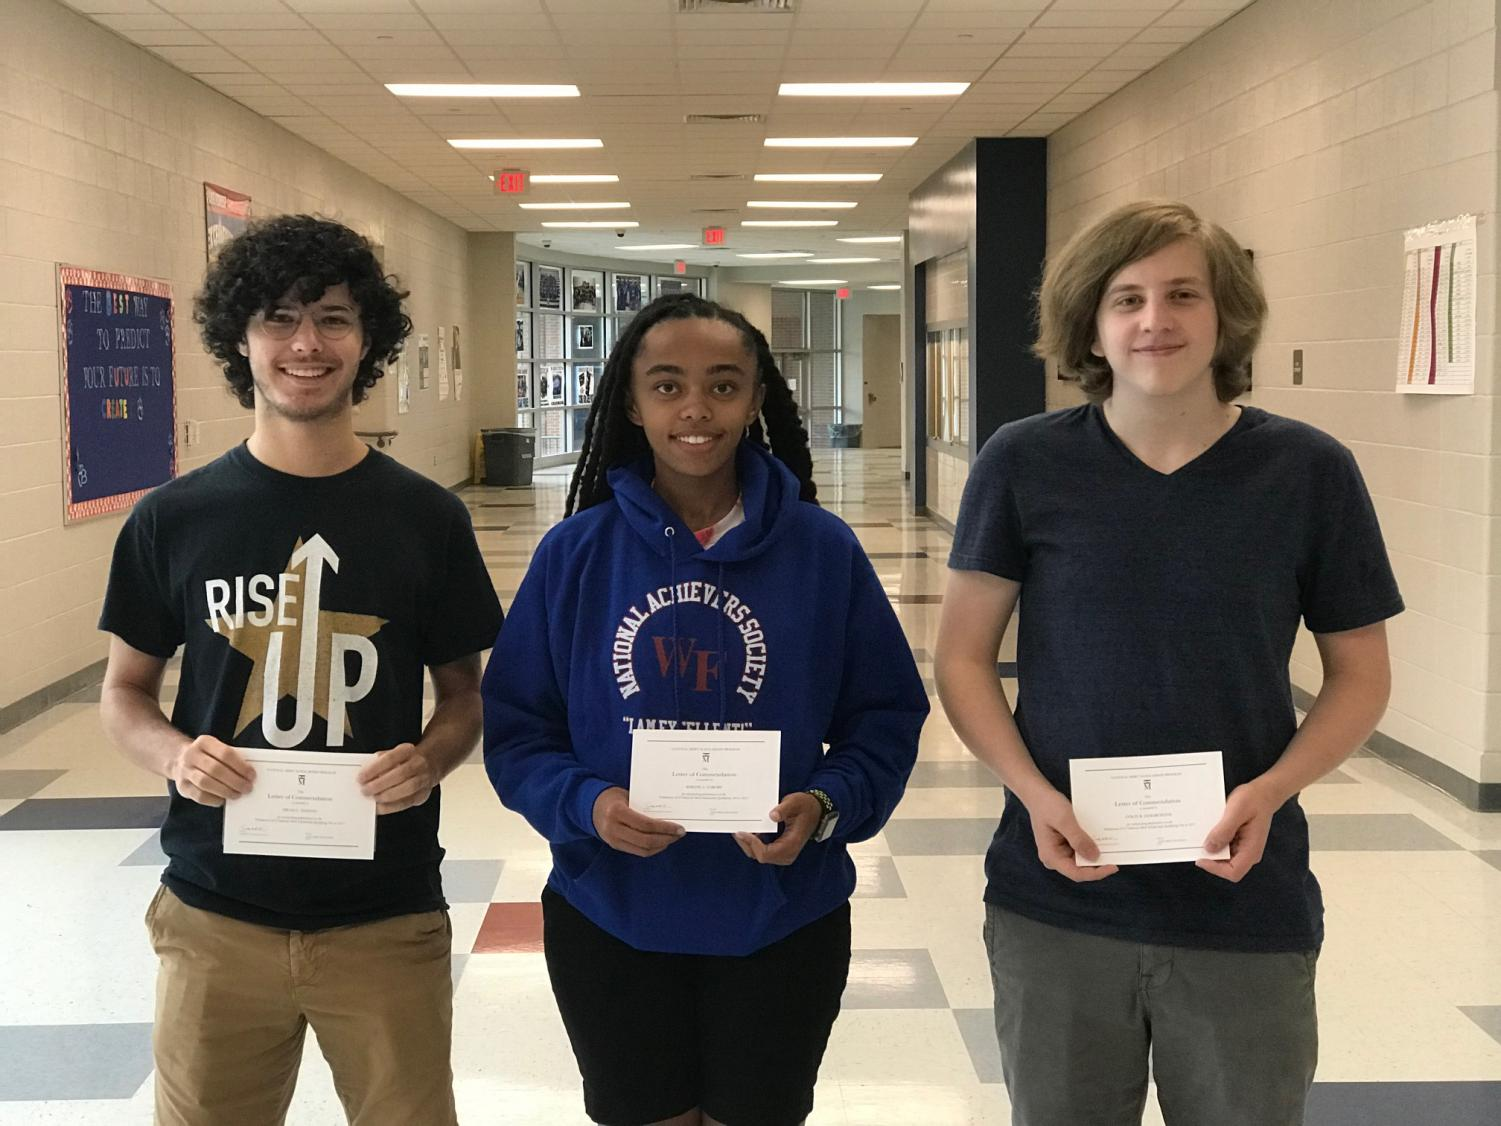 Featured: Seniors Dylan Haston, Simone Nabors, and Colin Lemarchand.